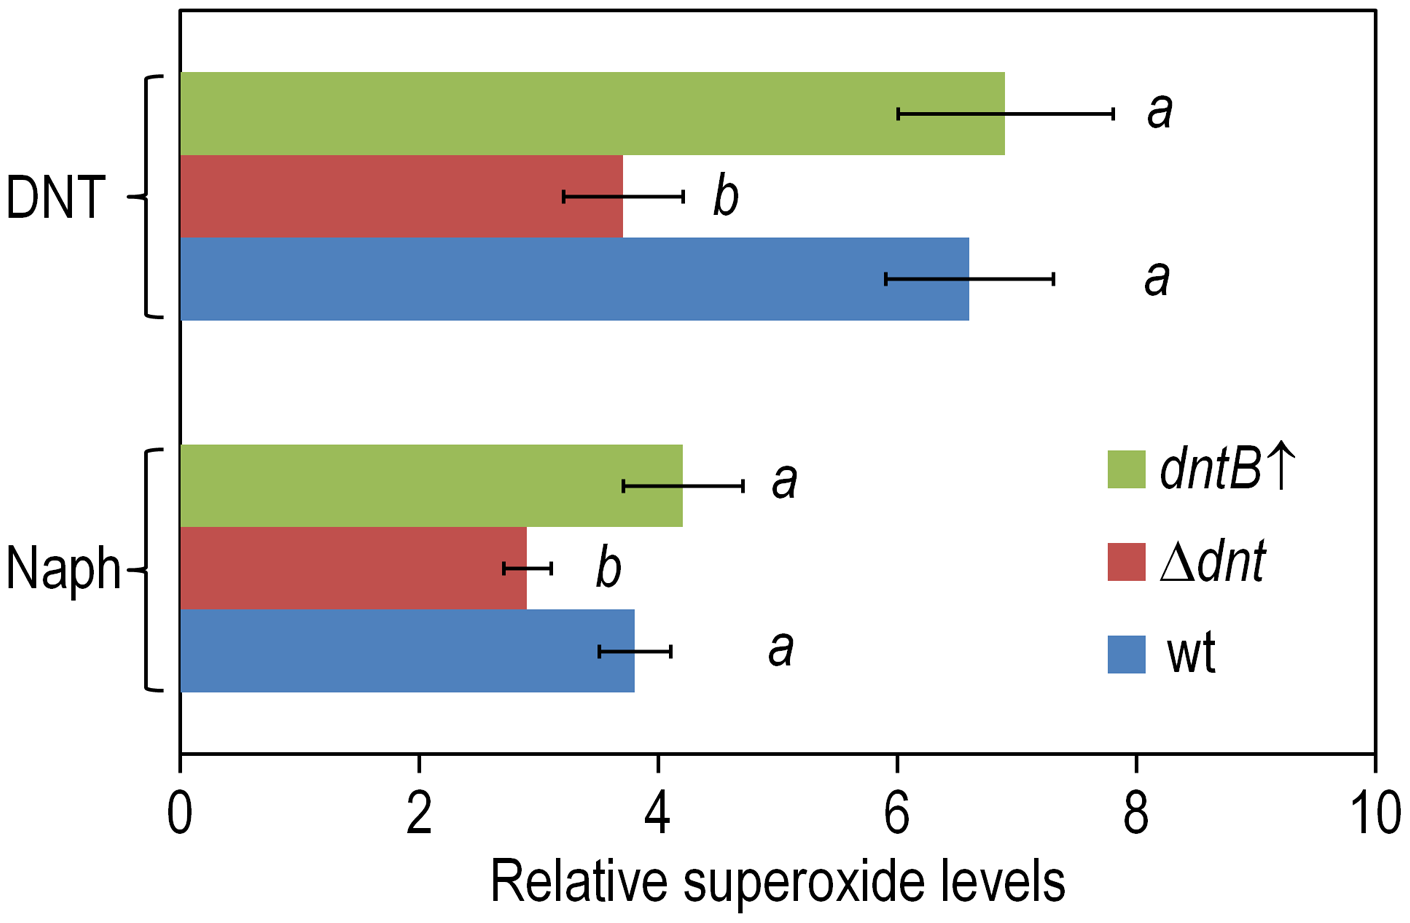 Superoxide production in <i>Burkholderia</i> sp. DNT upon exposure to DNT and naphthalene.